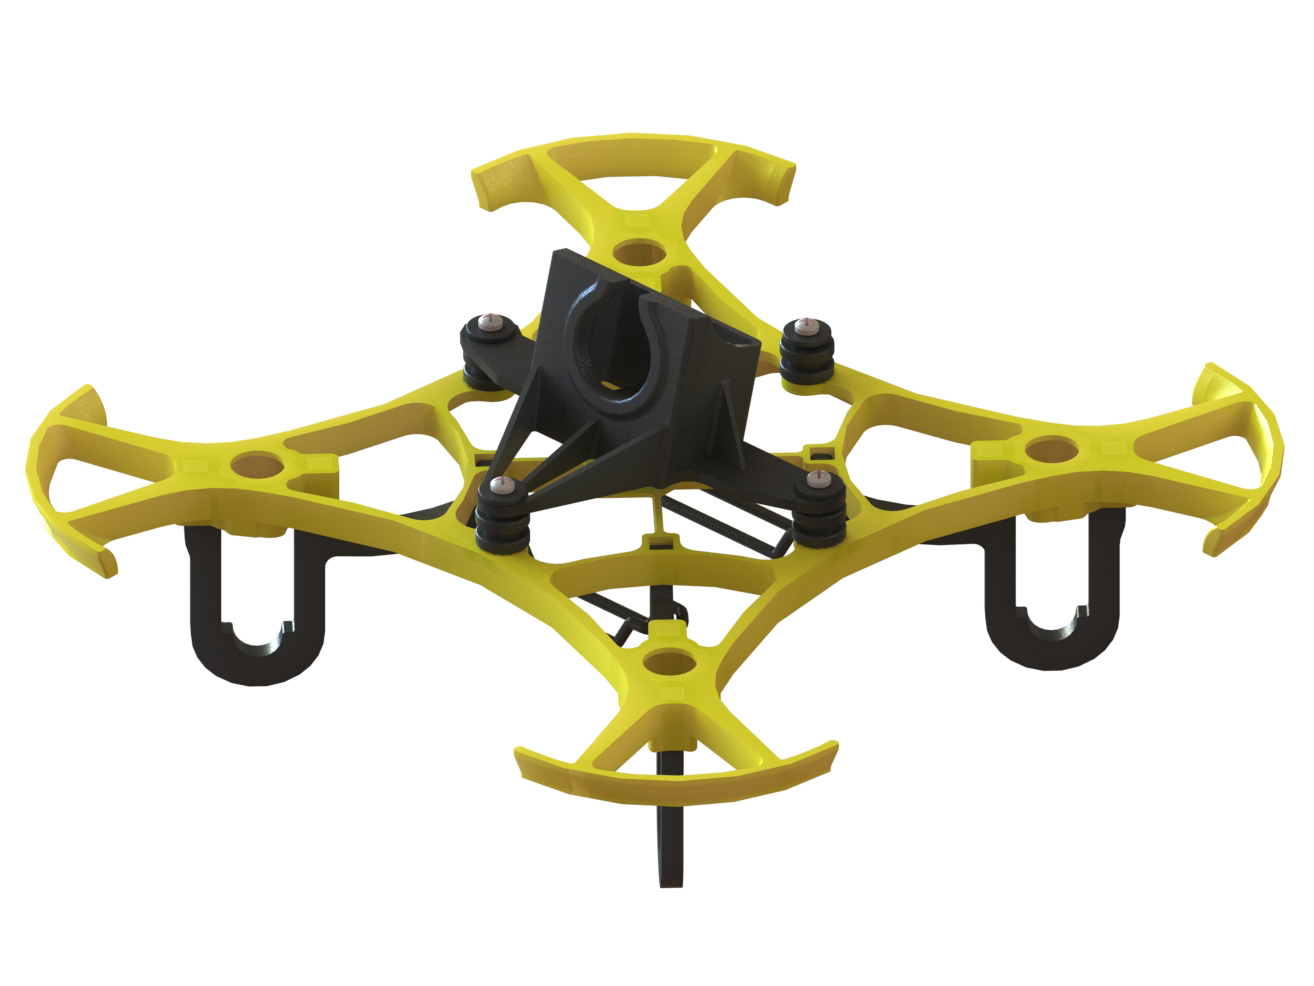 LX2411-4 - Pika 65 FPV Racer, Yellow Color